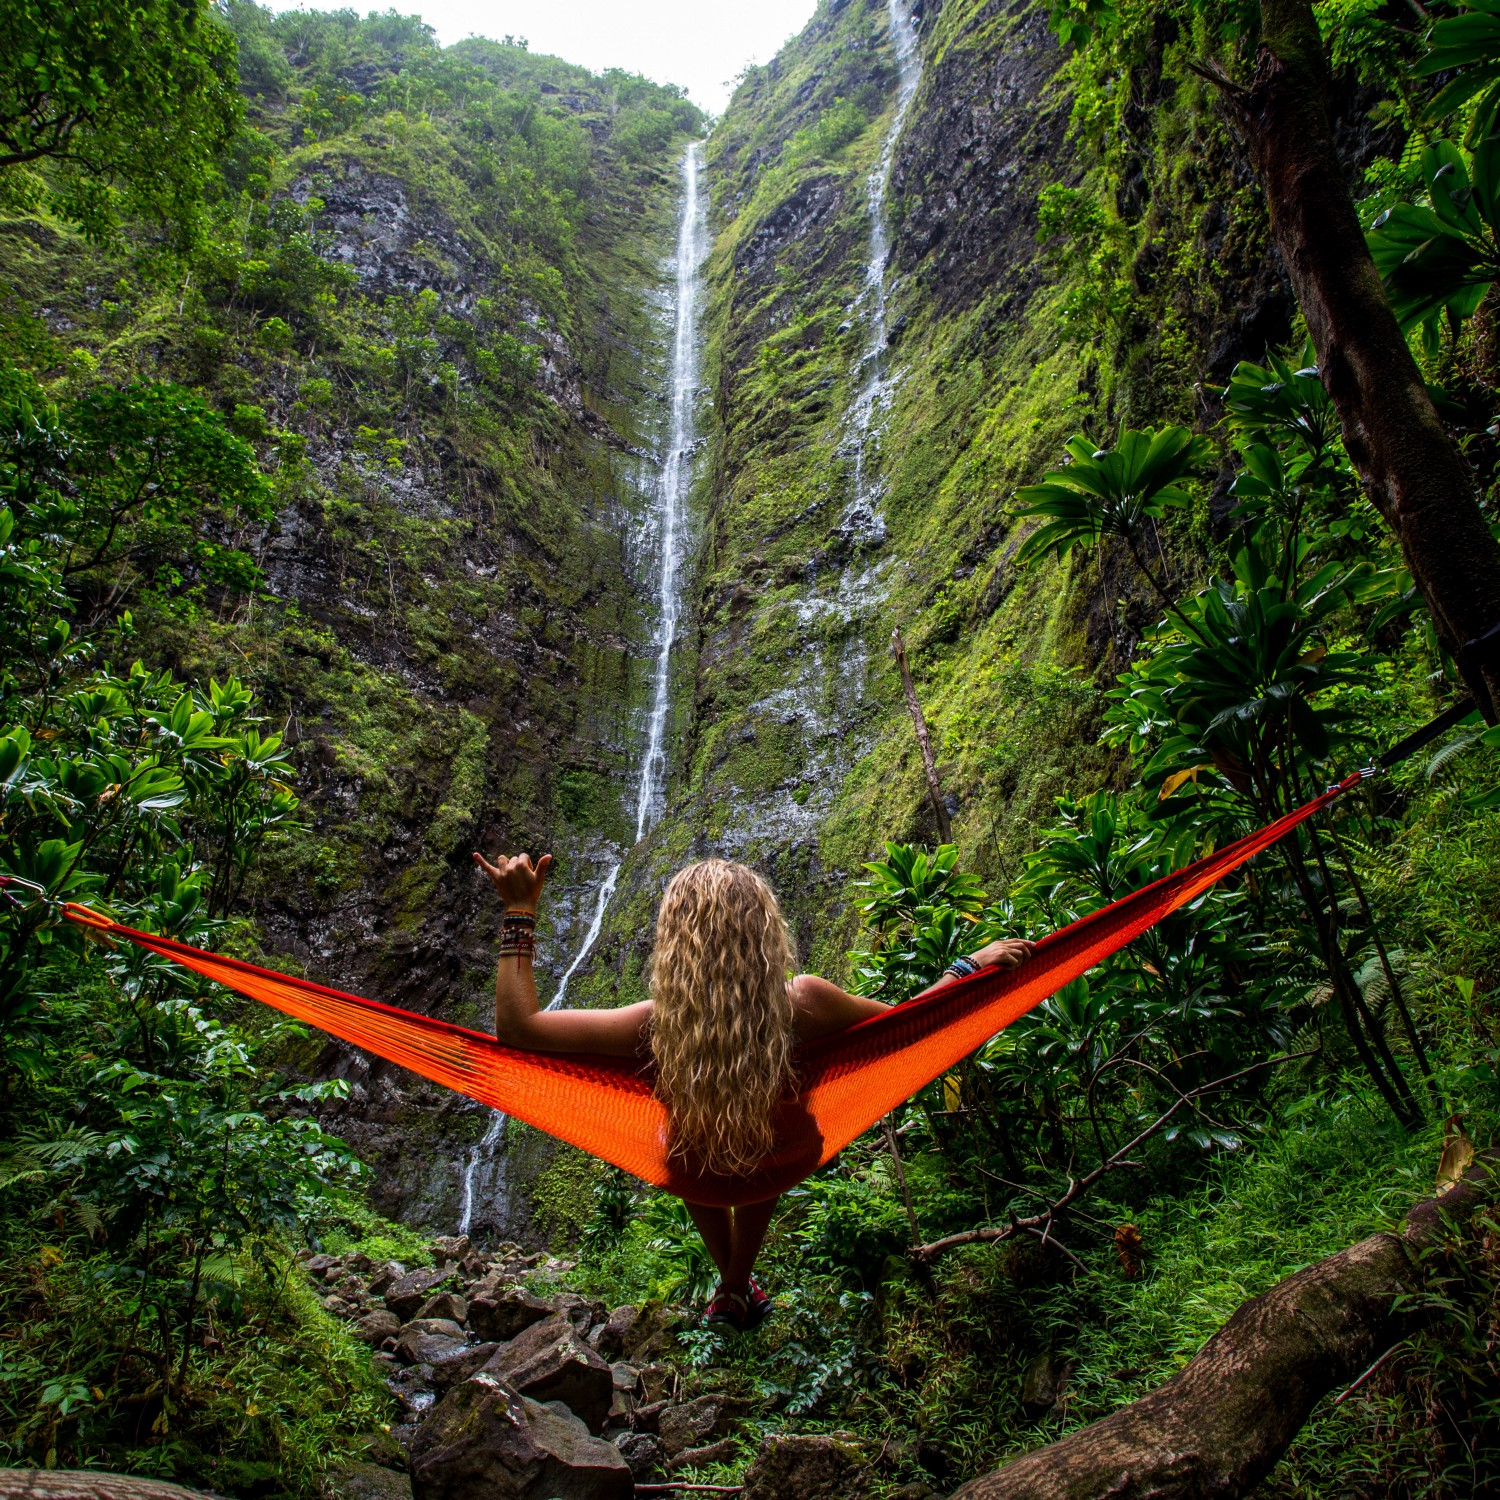 back view of long, wavy, sun-bleached blond-haired girl sitting in orange hammock in front of waterfall with trickling flow, green moss all over the mountain in front of her, vibrant ti leaf plants and ferns all around, she is making a shaka sign with her left hand, multiple bracelets on both wrists